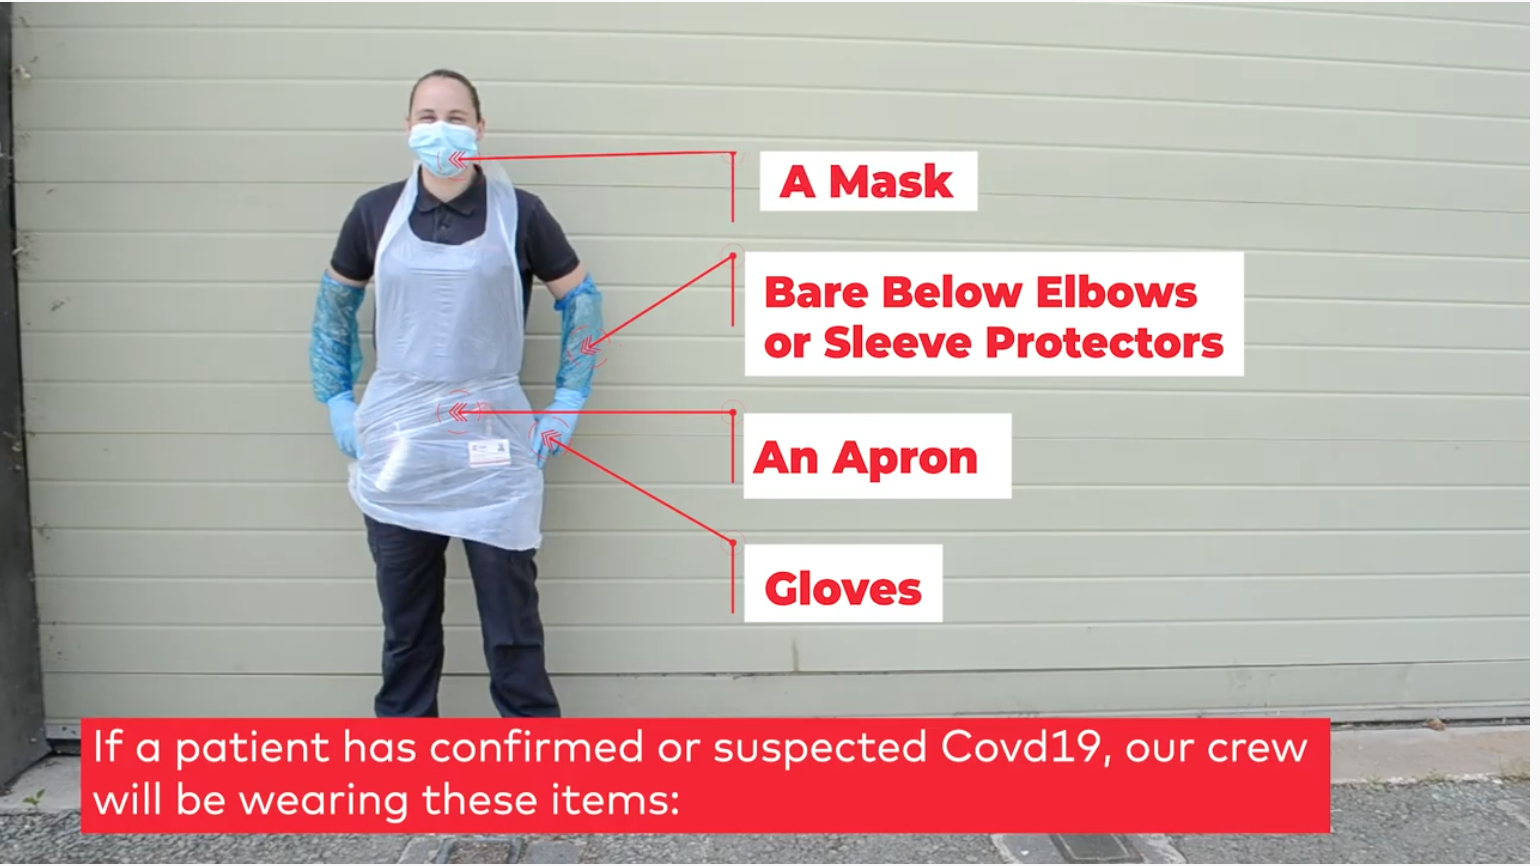 Patient safety during Covid19